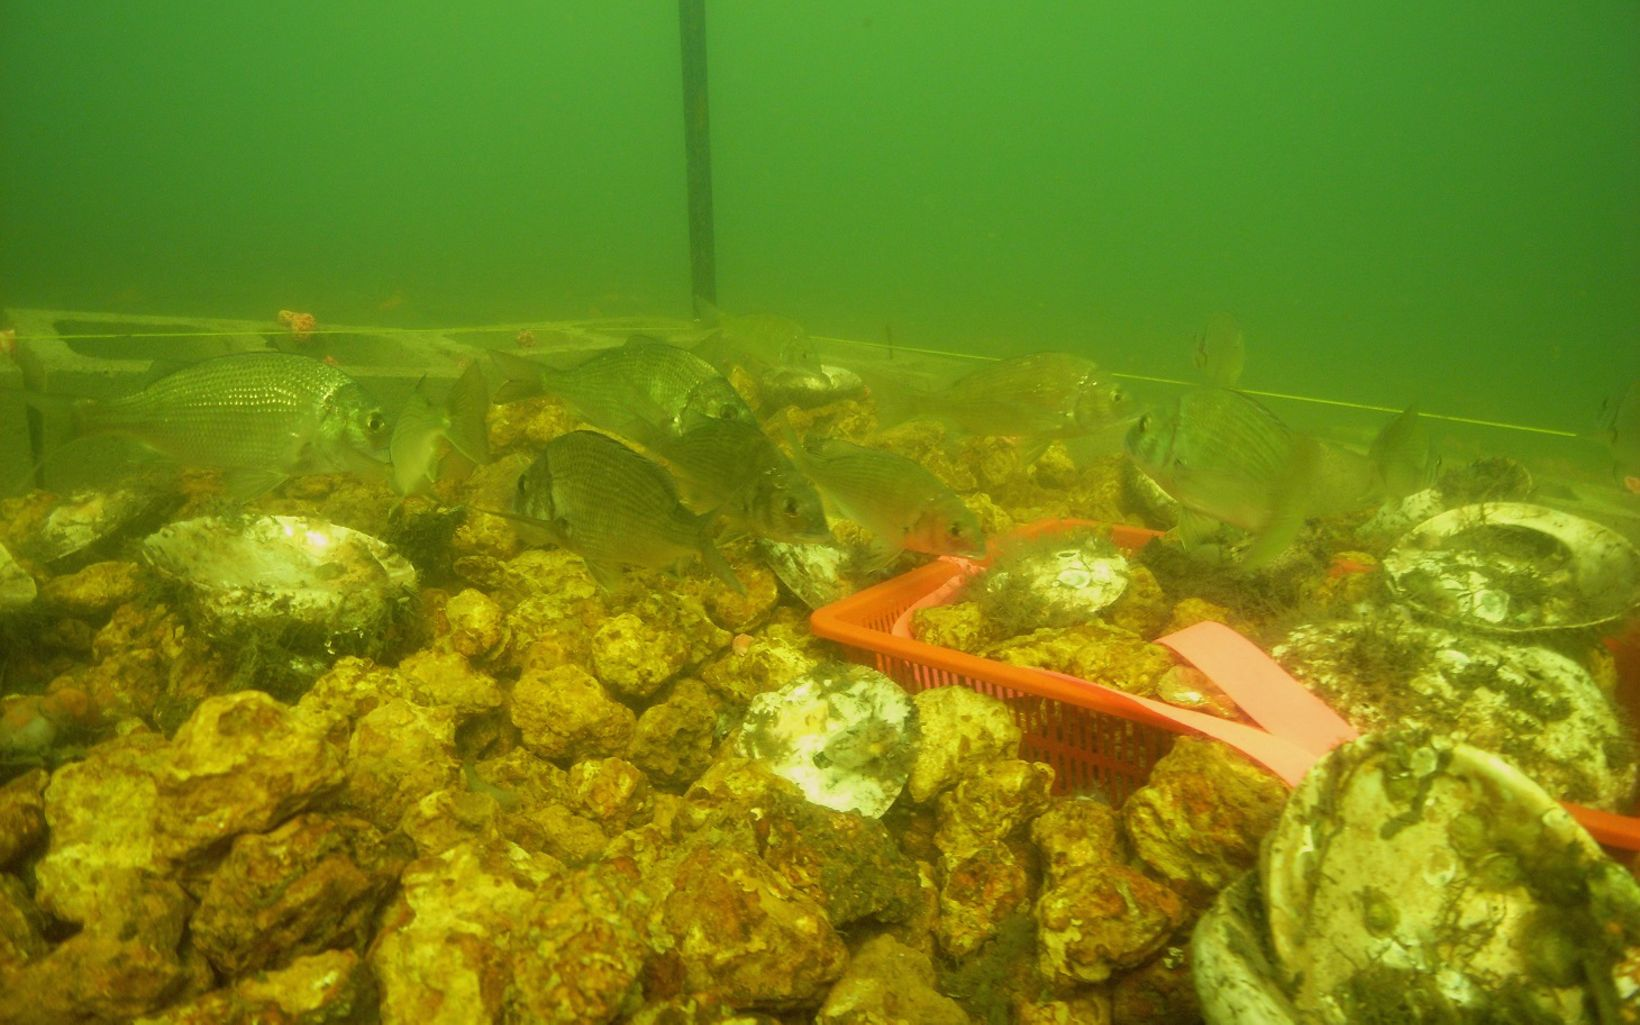 checking out freshly laid oyster reef substrate during testing phase